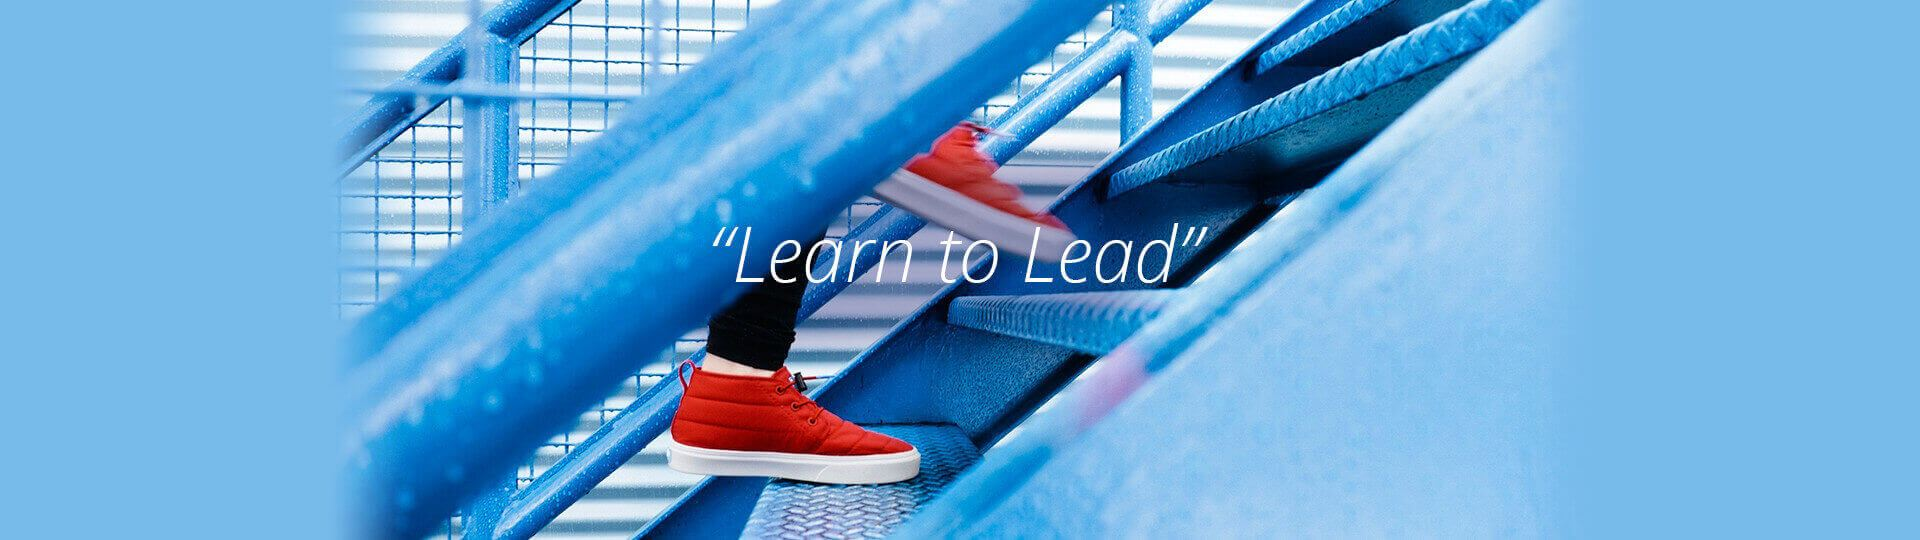 Main-1-Learn-to-lead